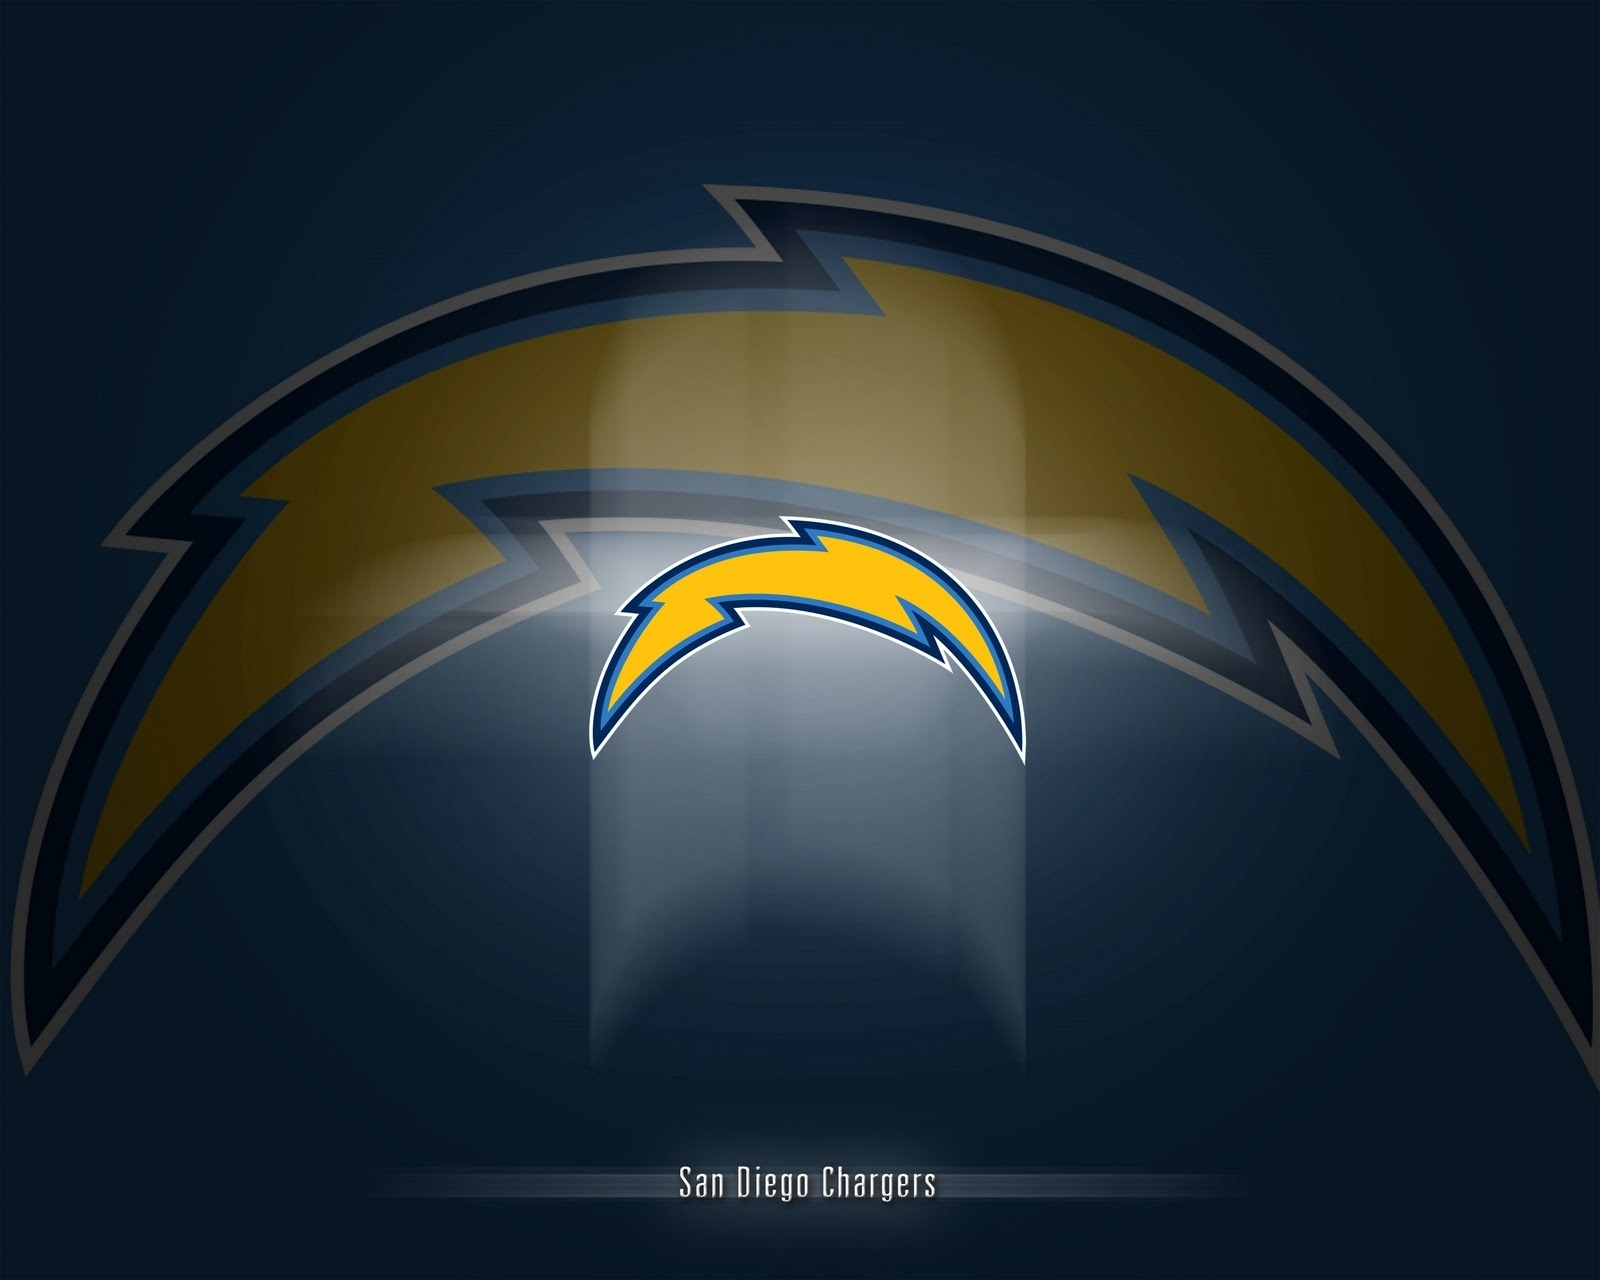 sd chargers photo | san diego chargers wallpapers | places to